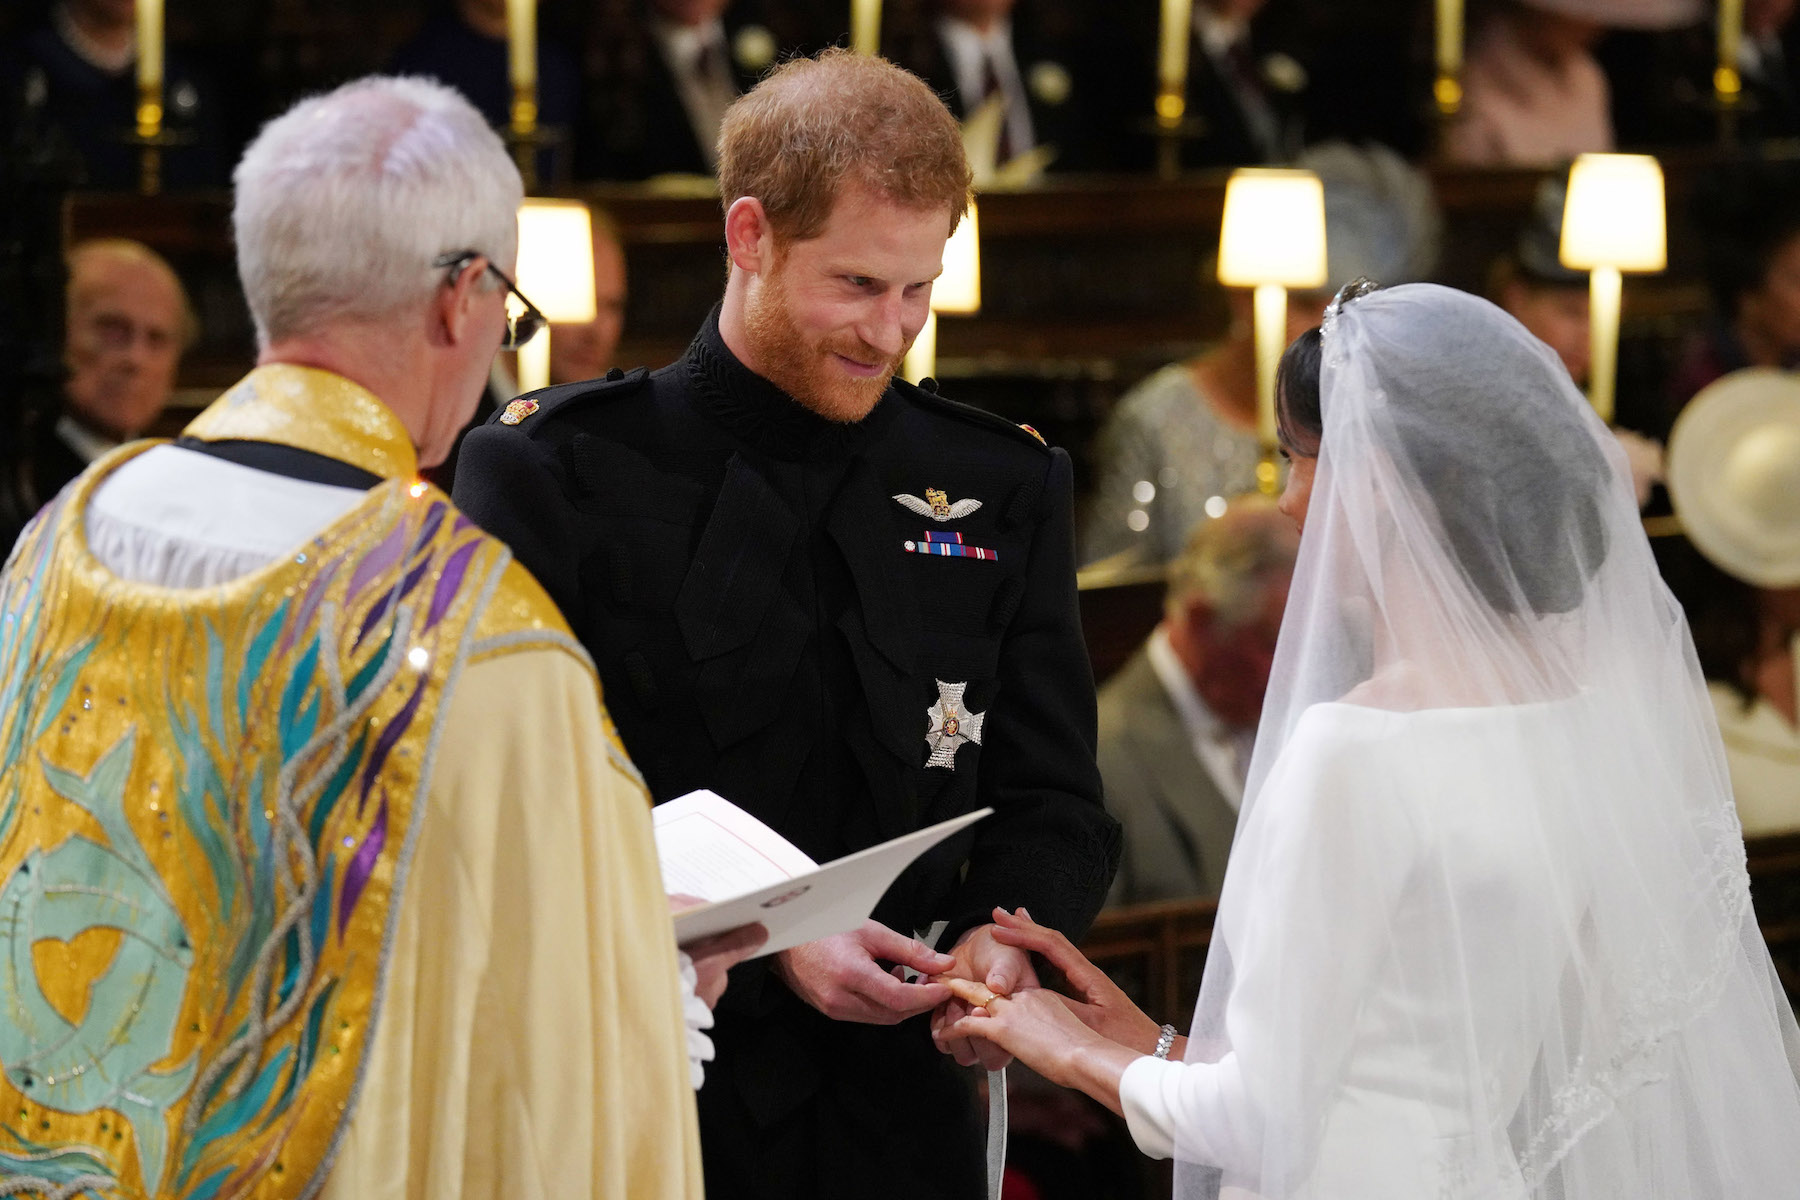 <div class='meta'><div class='origin-logo' data-origin='Creative Content'></div><span class='caption-text' data-credit='Jonathan Brady.Getty Images'>Prince Harry places the wedding ring on the finger of Meghan Markle during their wedding service, conducted by the Archbishop of Canterbury Justin Welby.</span></div>